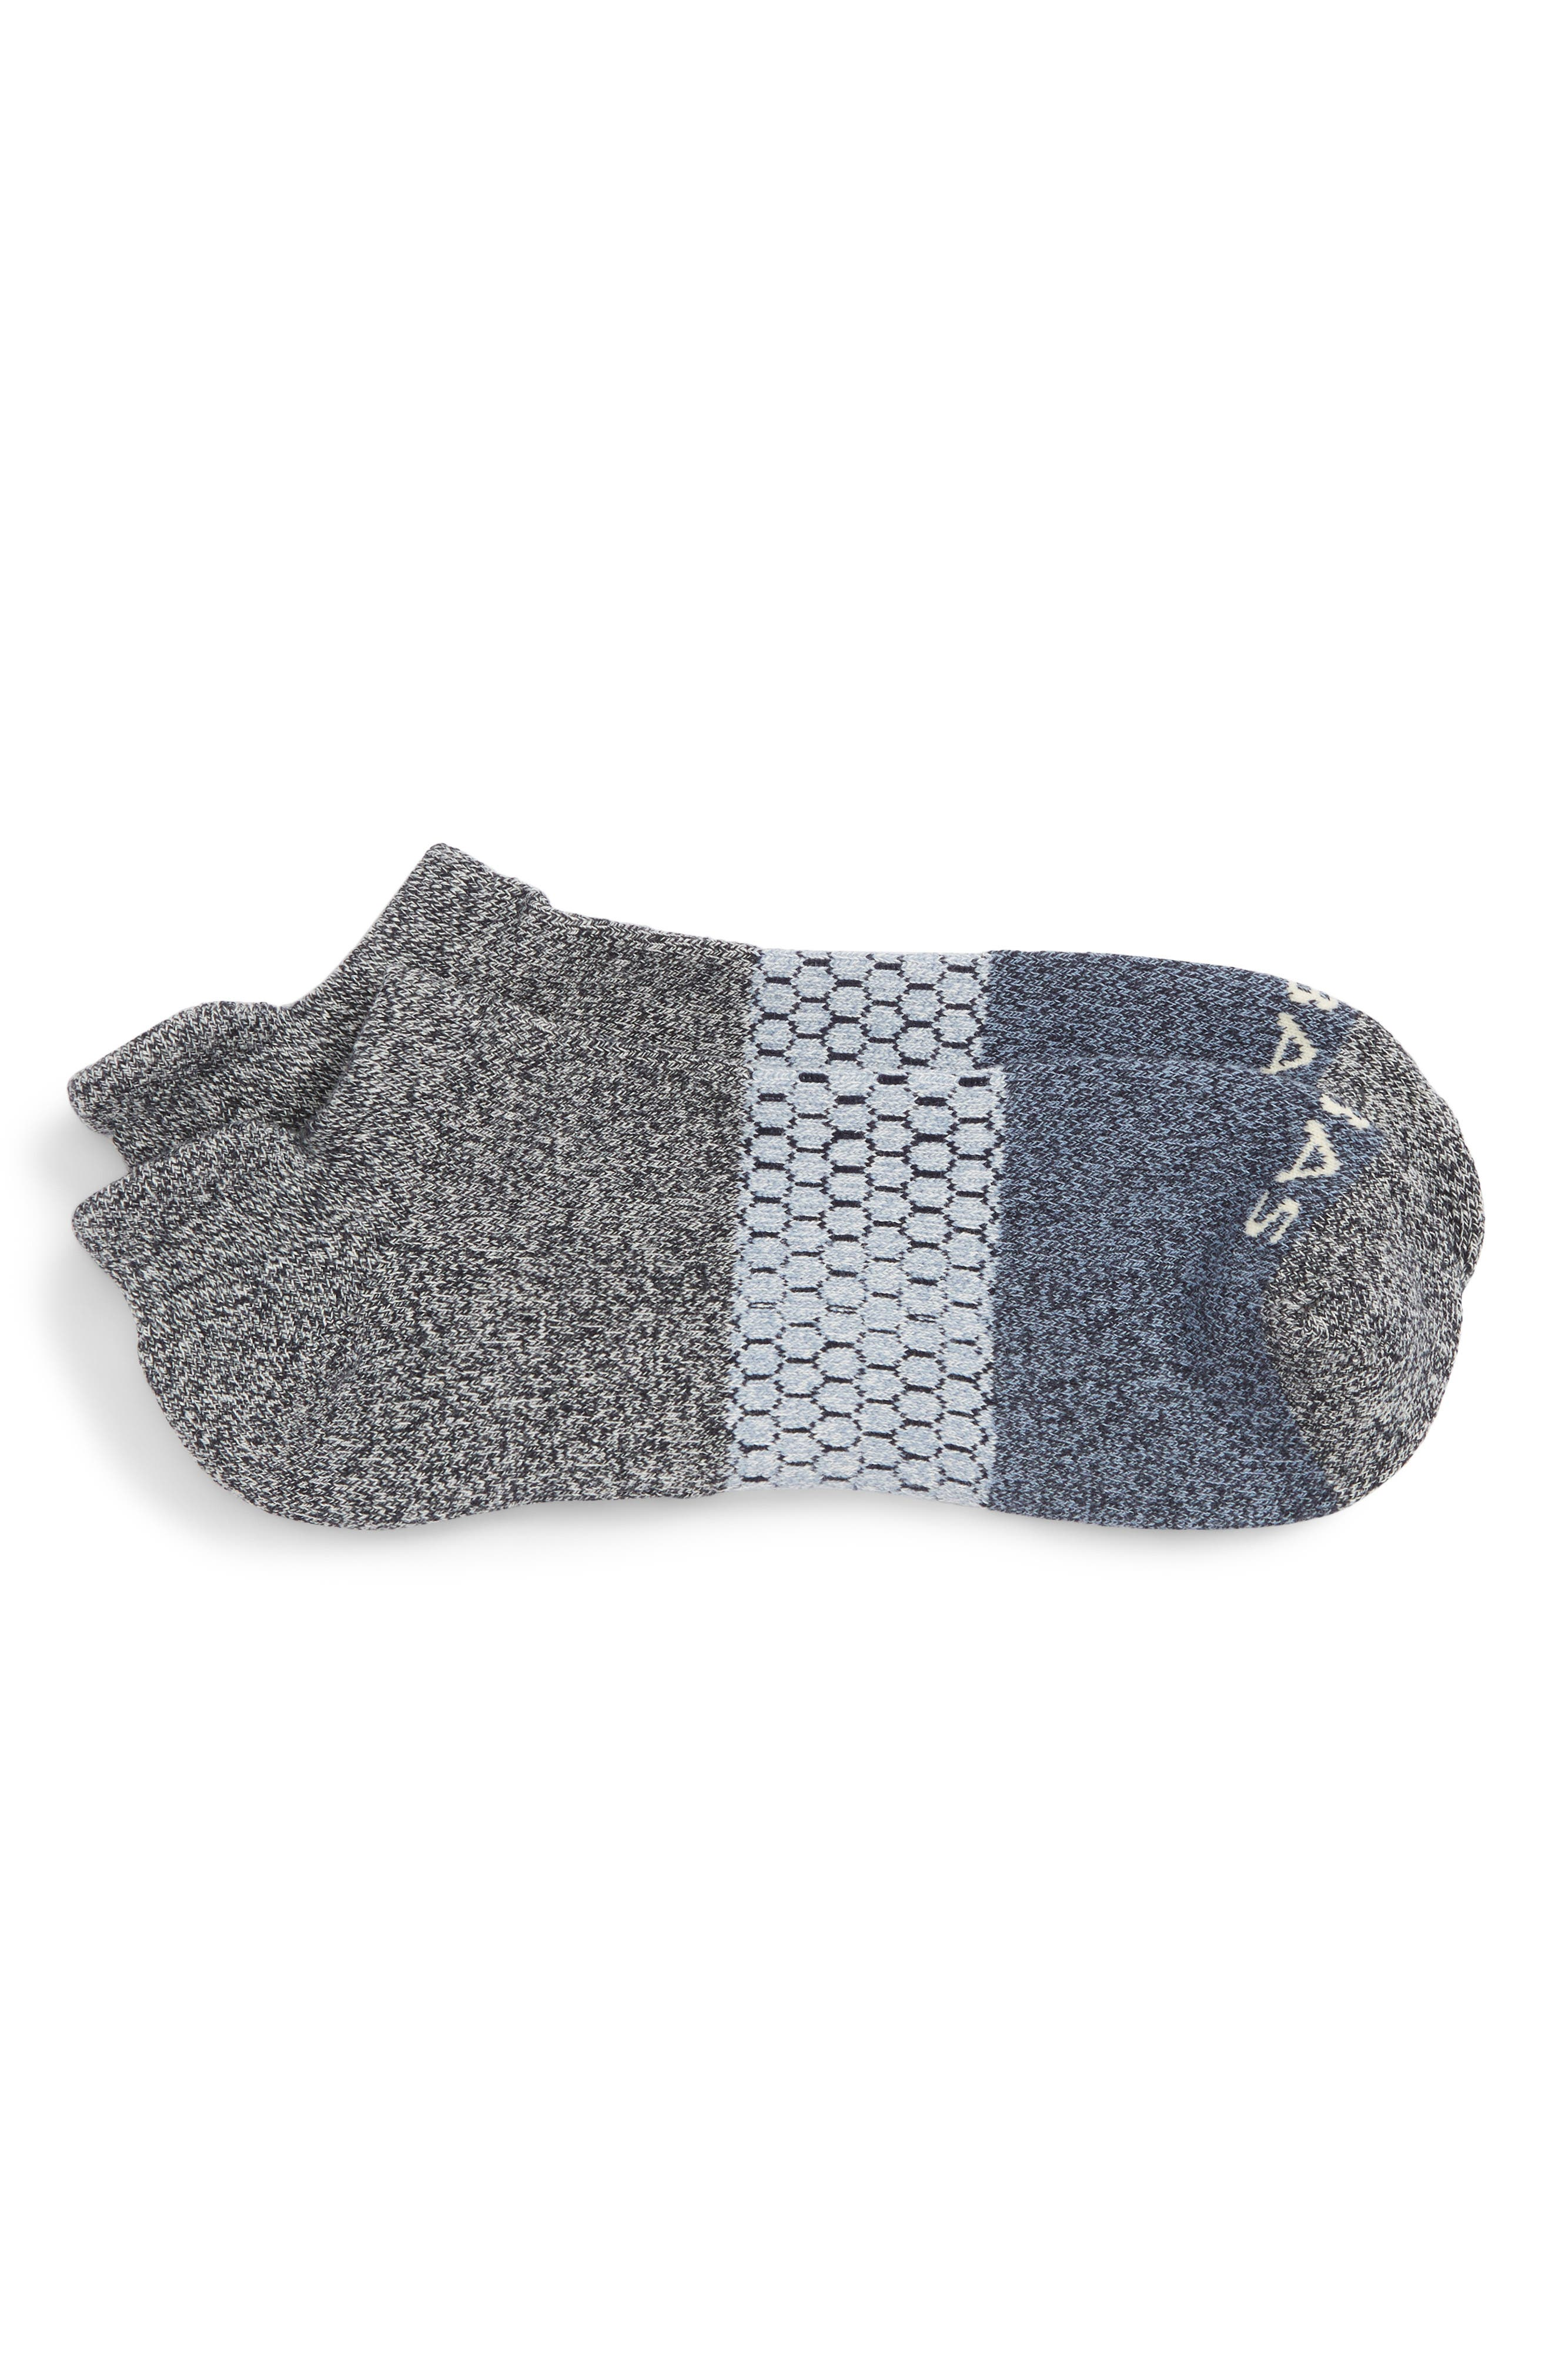 Colorblock Ankle Socks,                         Main,                         color, MIDNIGHT/ SOFT BLUE/ GREY